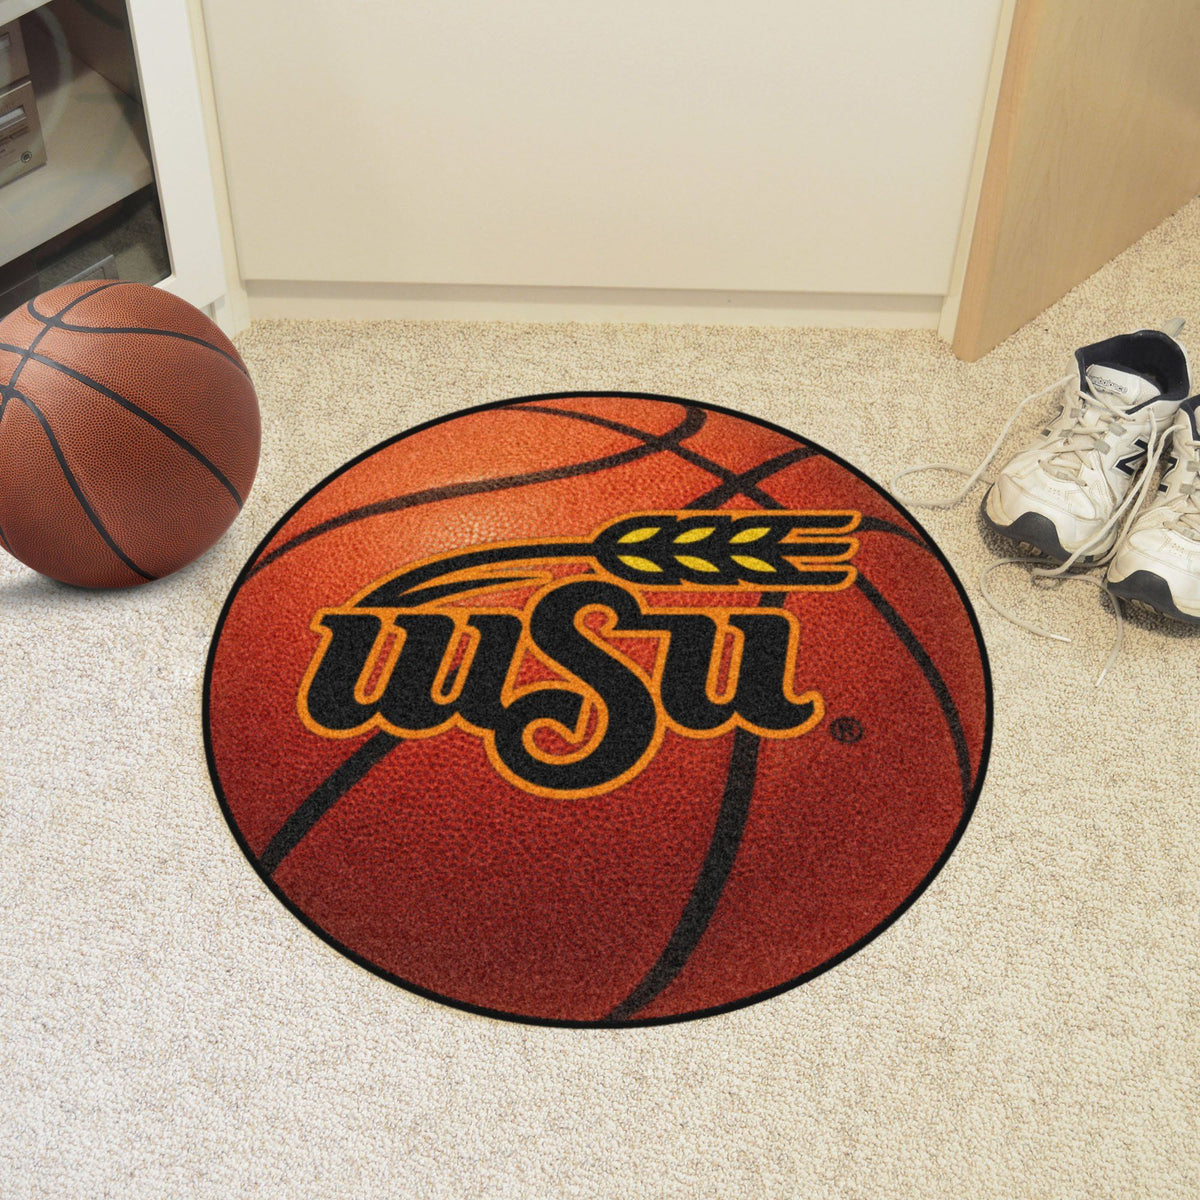 Collegiate - Basketball Mat: T - Z Collegiate Mats, Rectangular Mats, Basketball Mat, Collegiate, Home Fan Mats Wichita State